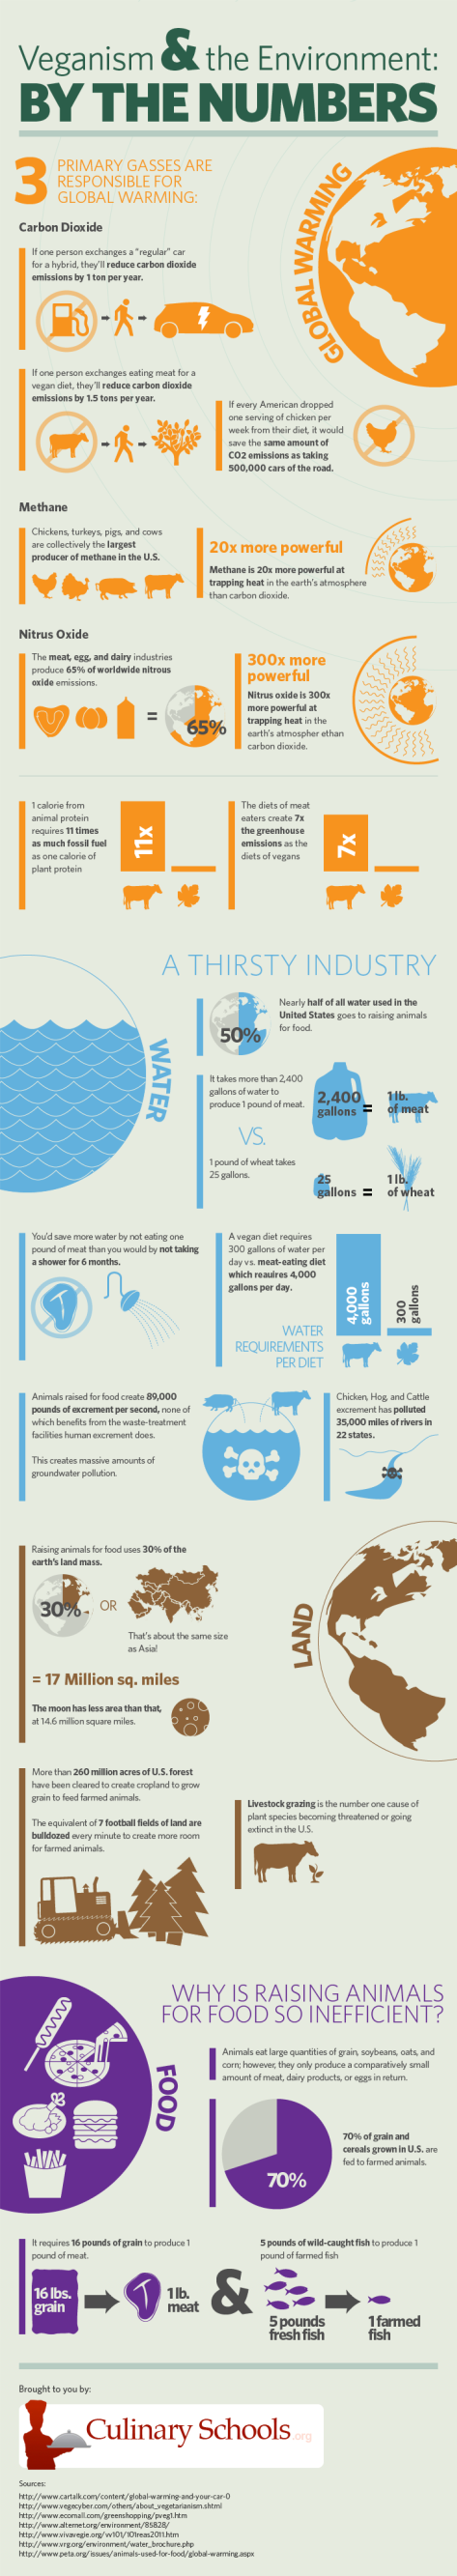 Vegan by the numbers